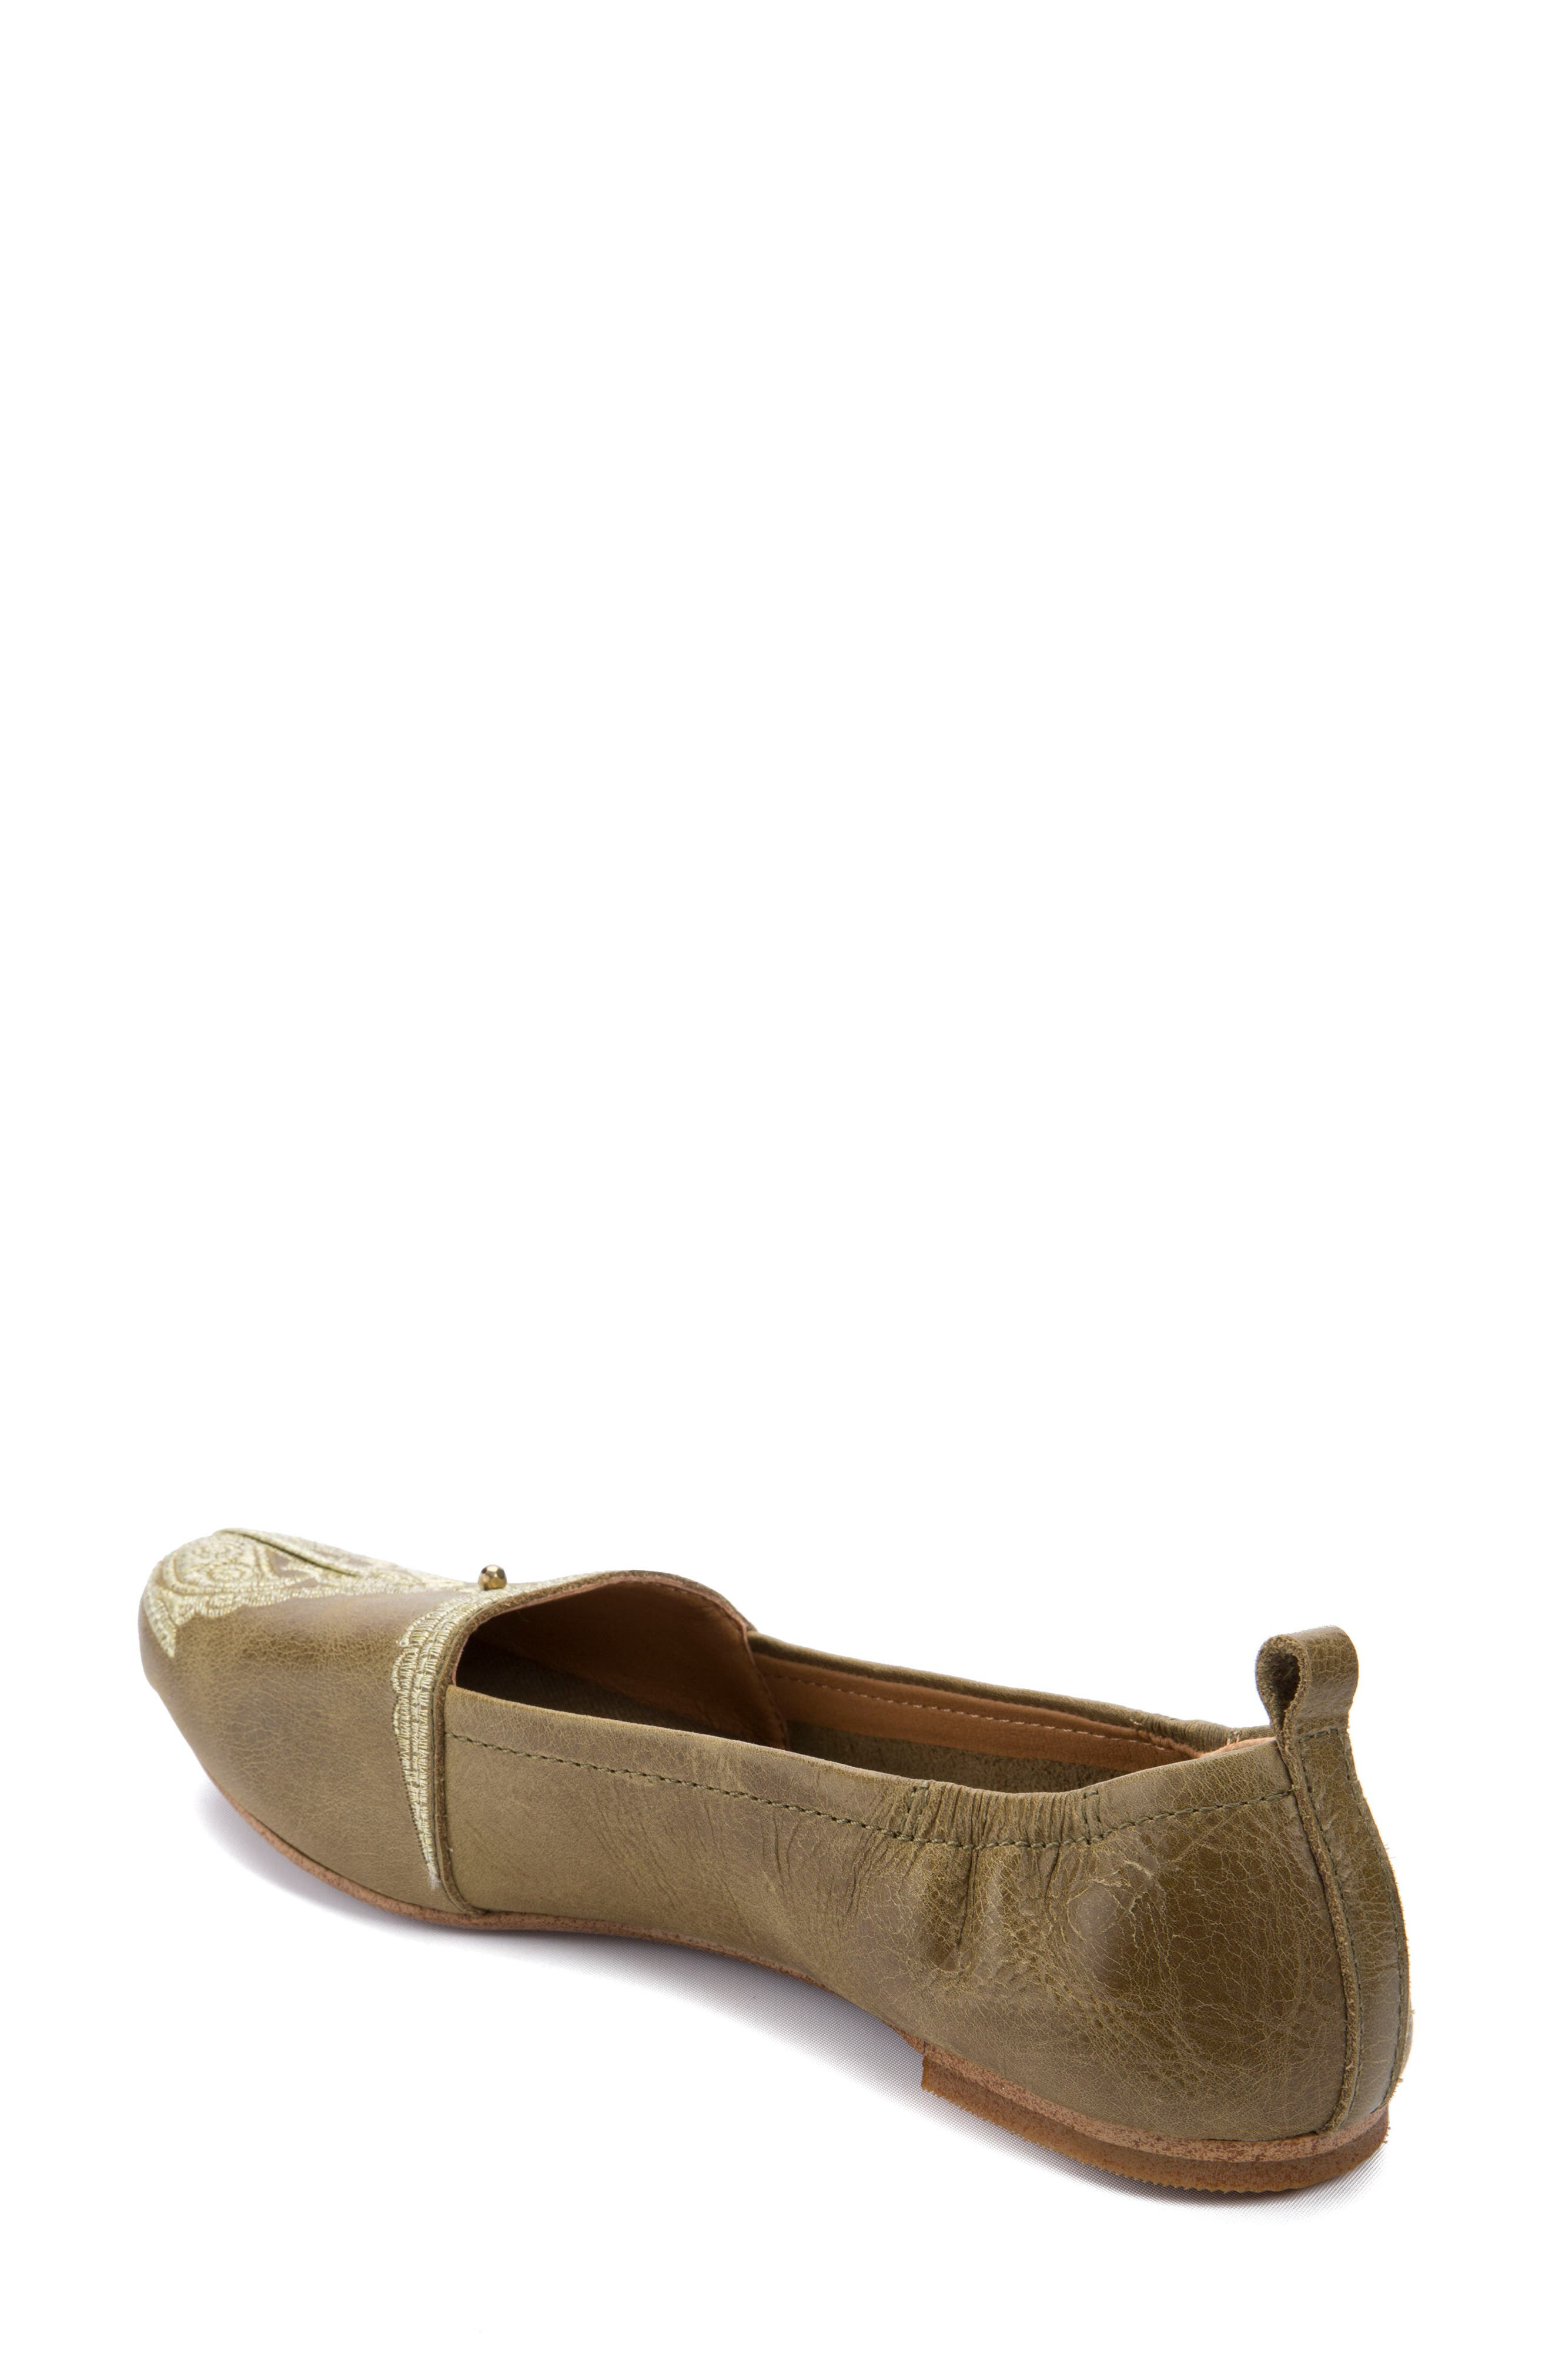 Bonzai Embroidered Flat,                             Alternate thumbnail 2, color,                             Olive Leather